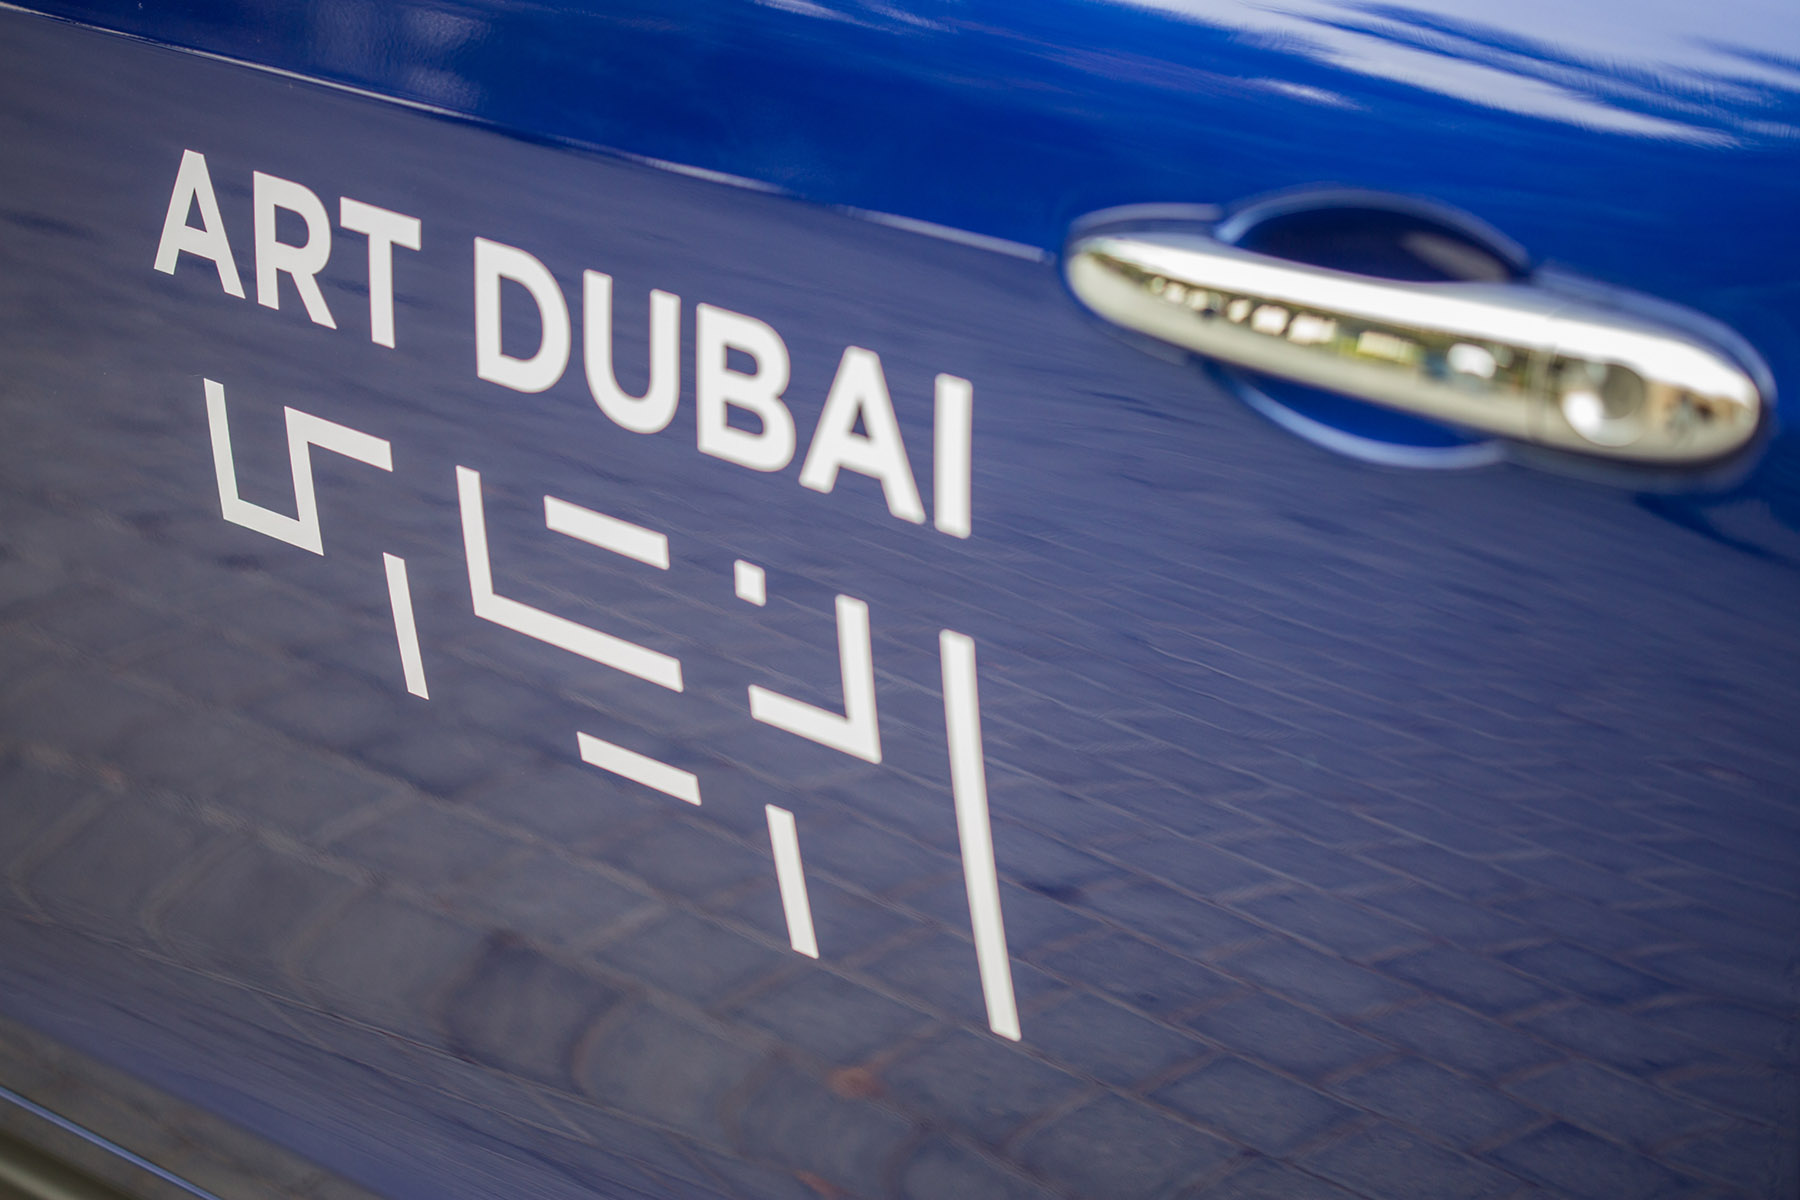 Art Dubai car at the Maserati event stand by Loesje Kessels Fashion Photographer